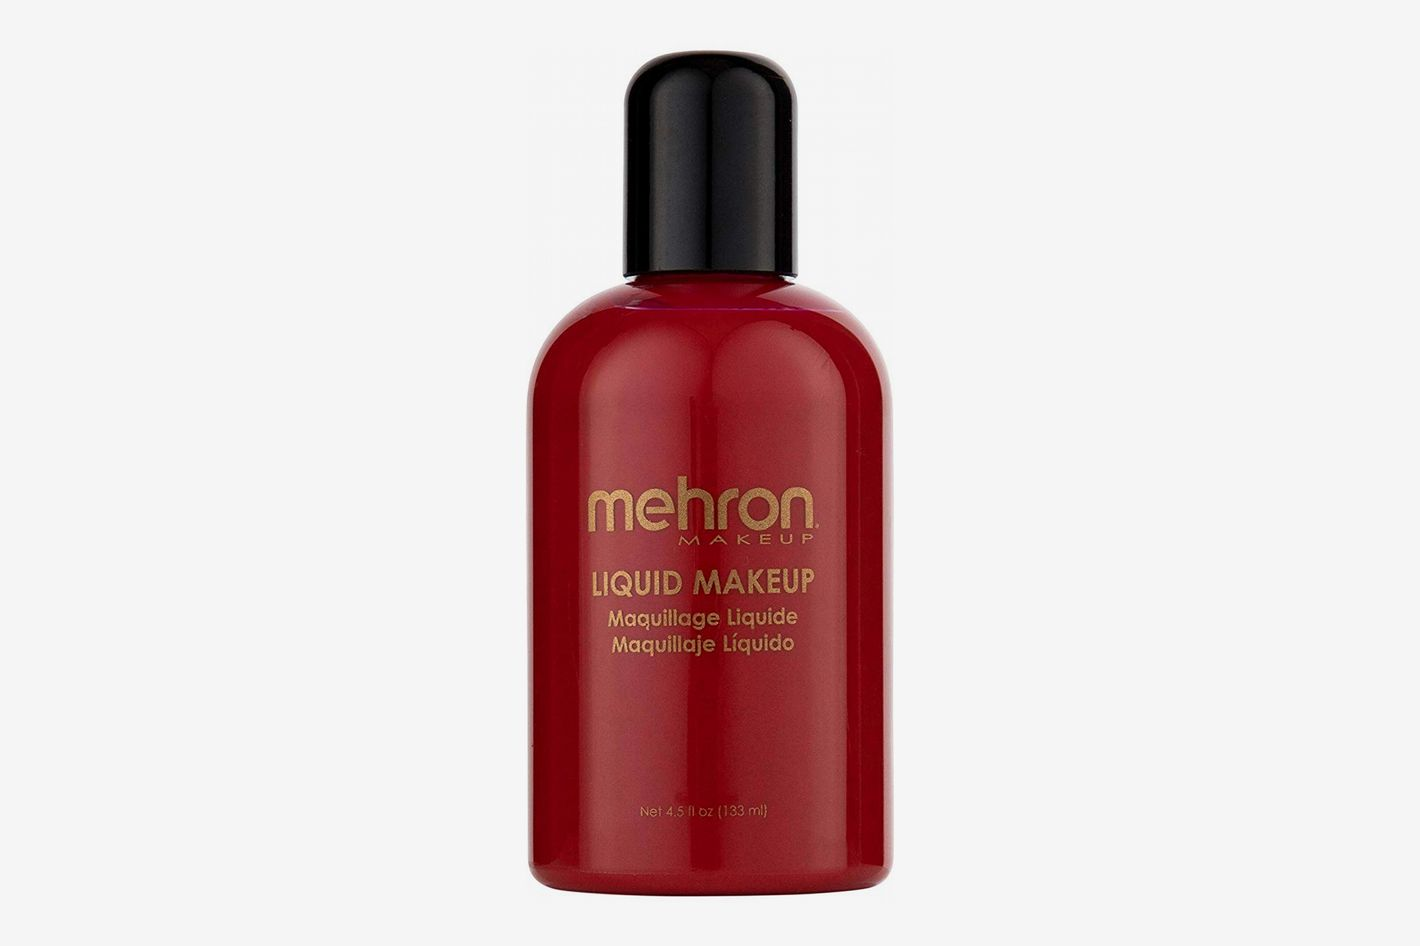 Mehron Makeup Liquid Face and Body Paint